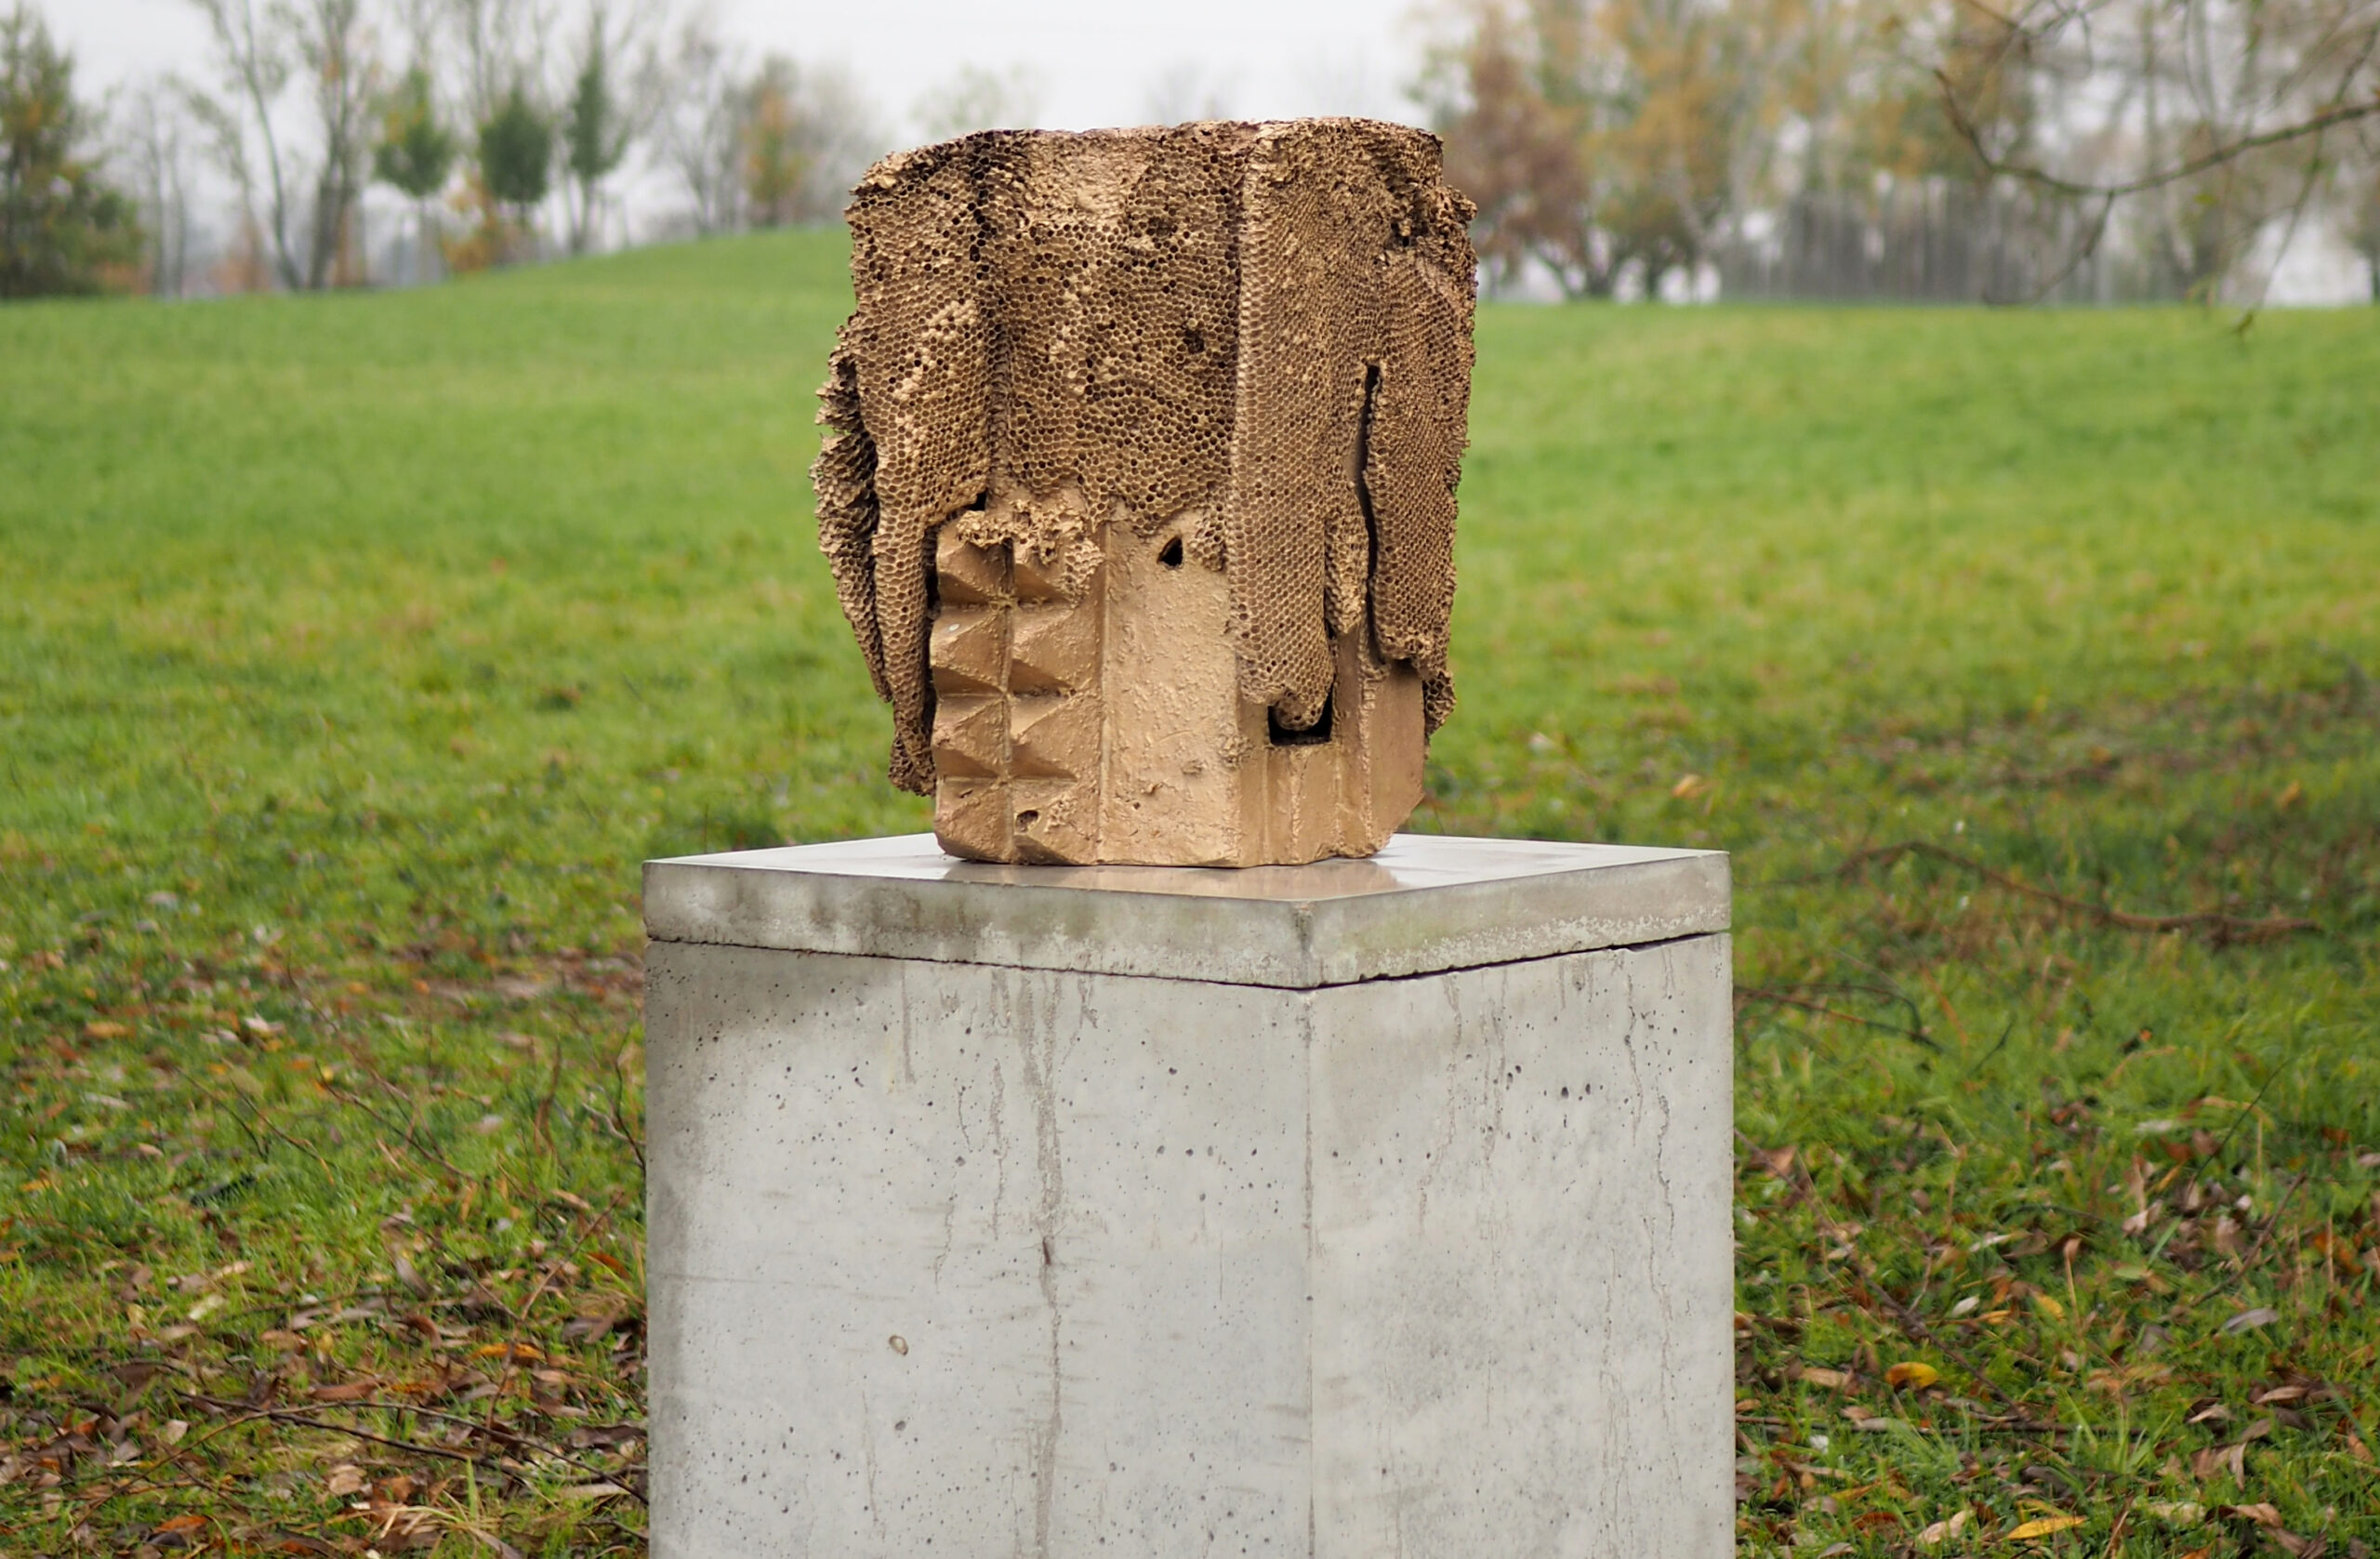 a sculpture that looks like a beehive